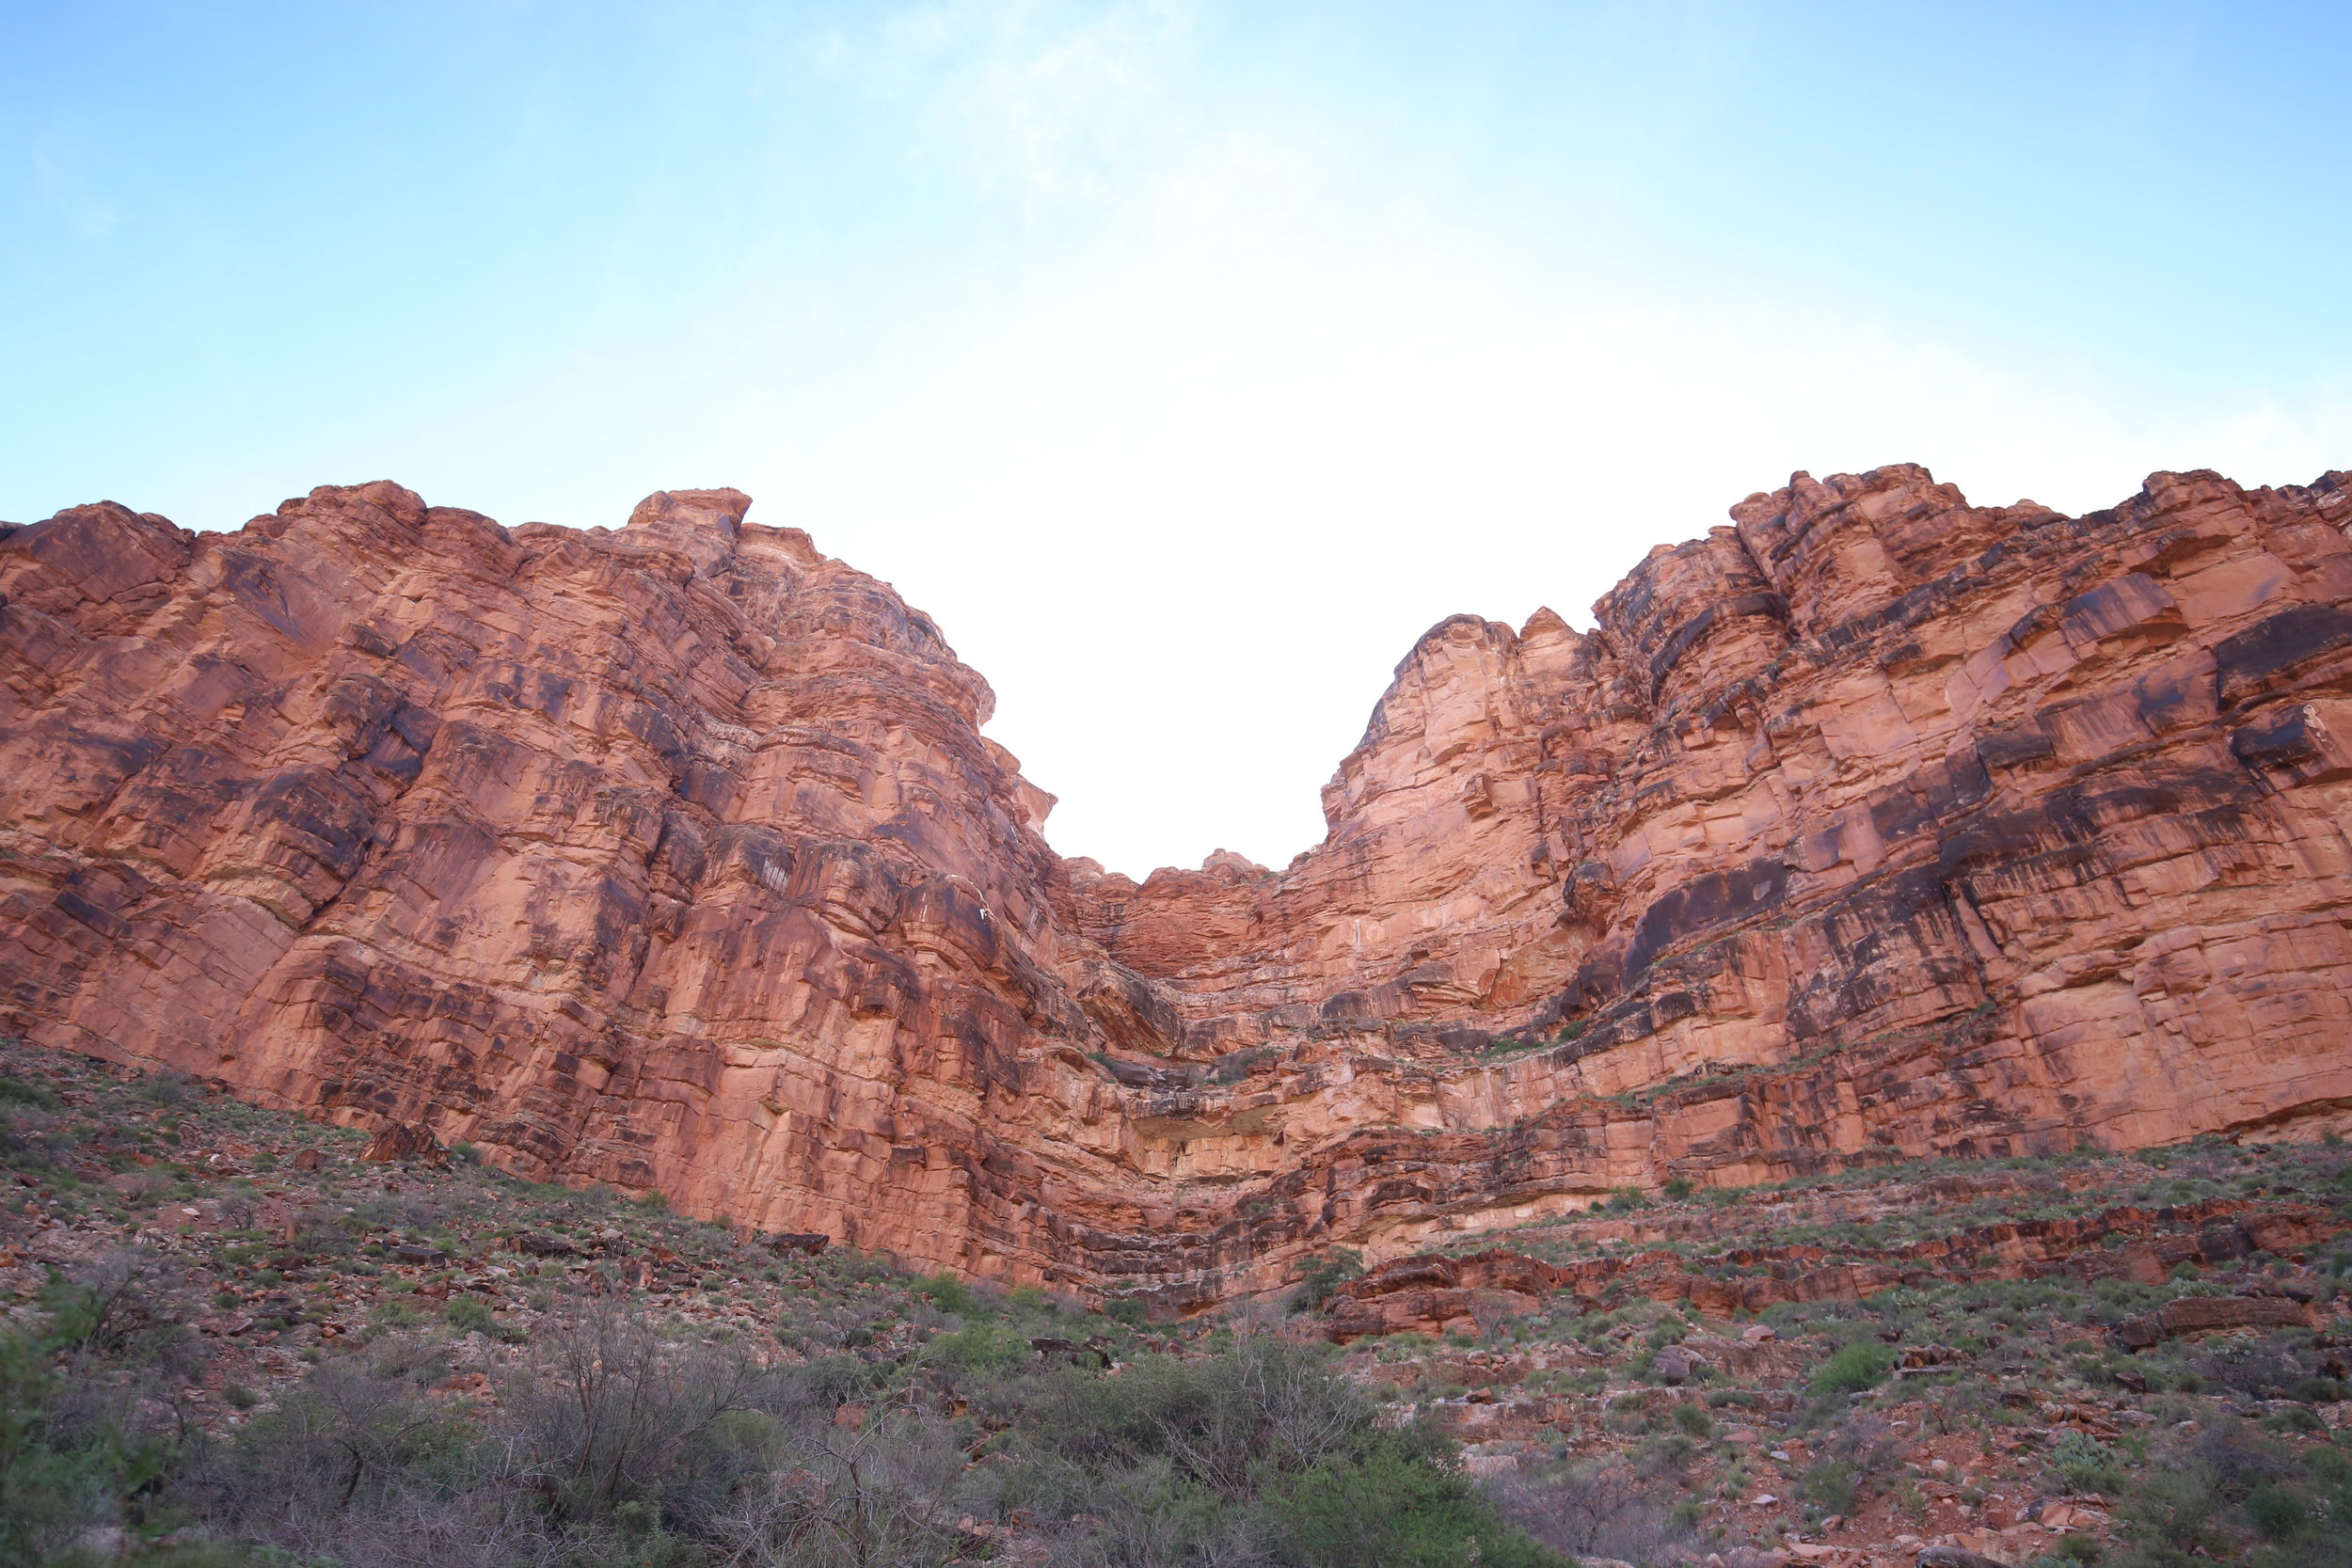 Red rocks of the Grand Canyon at midday, with sun halos.